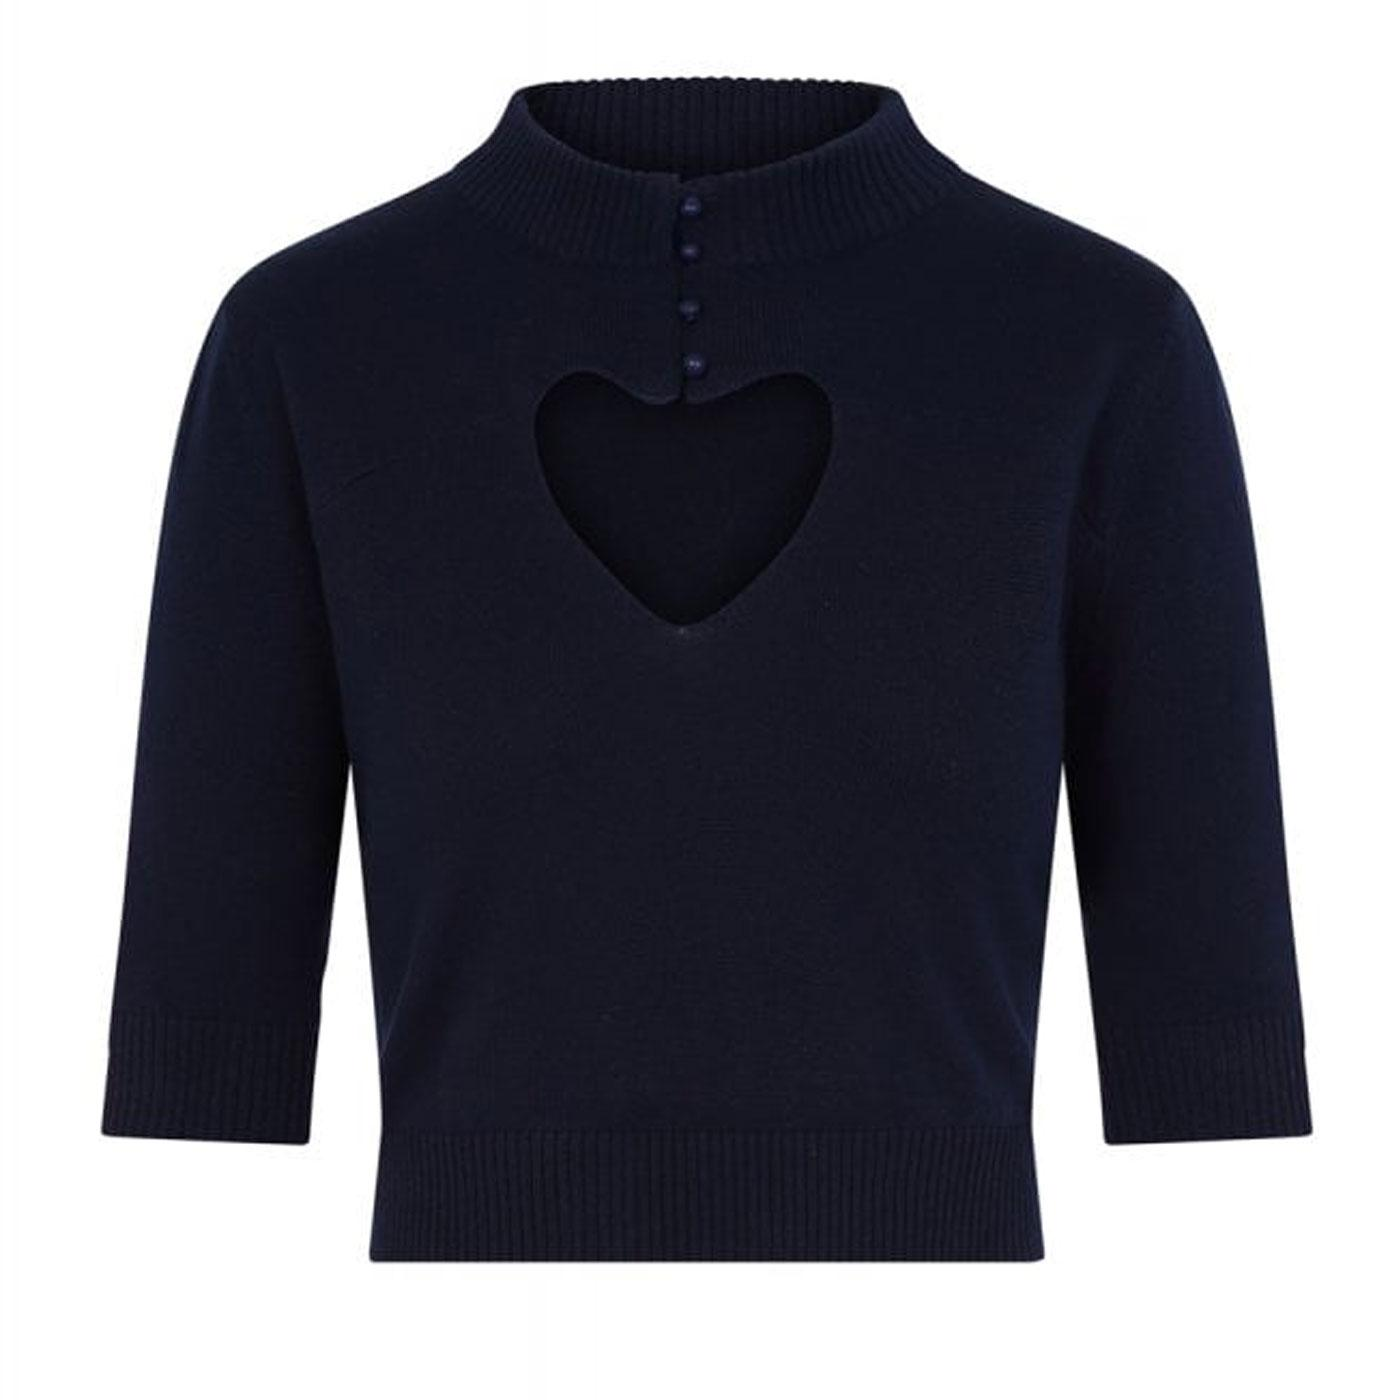 Shirley COLLECTIF Vintage Cut Out Heart Jumper